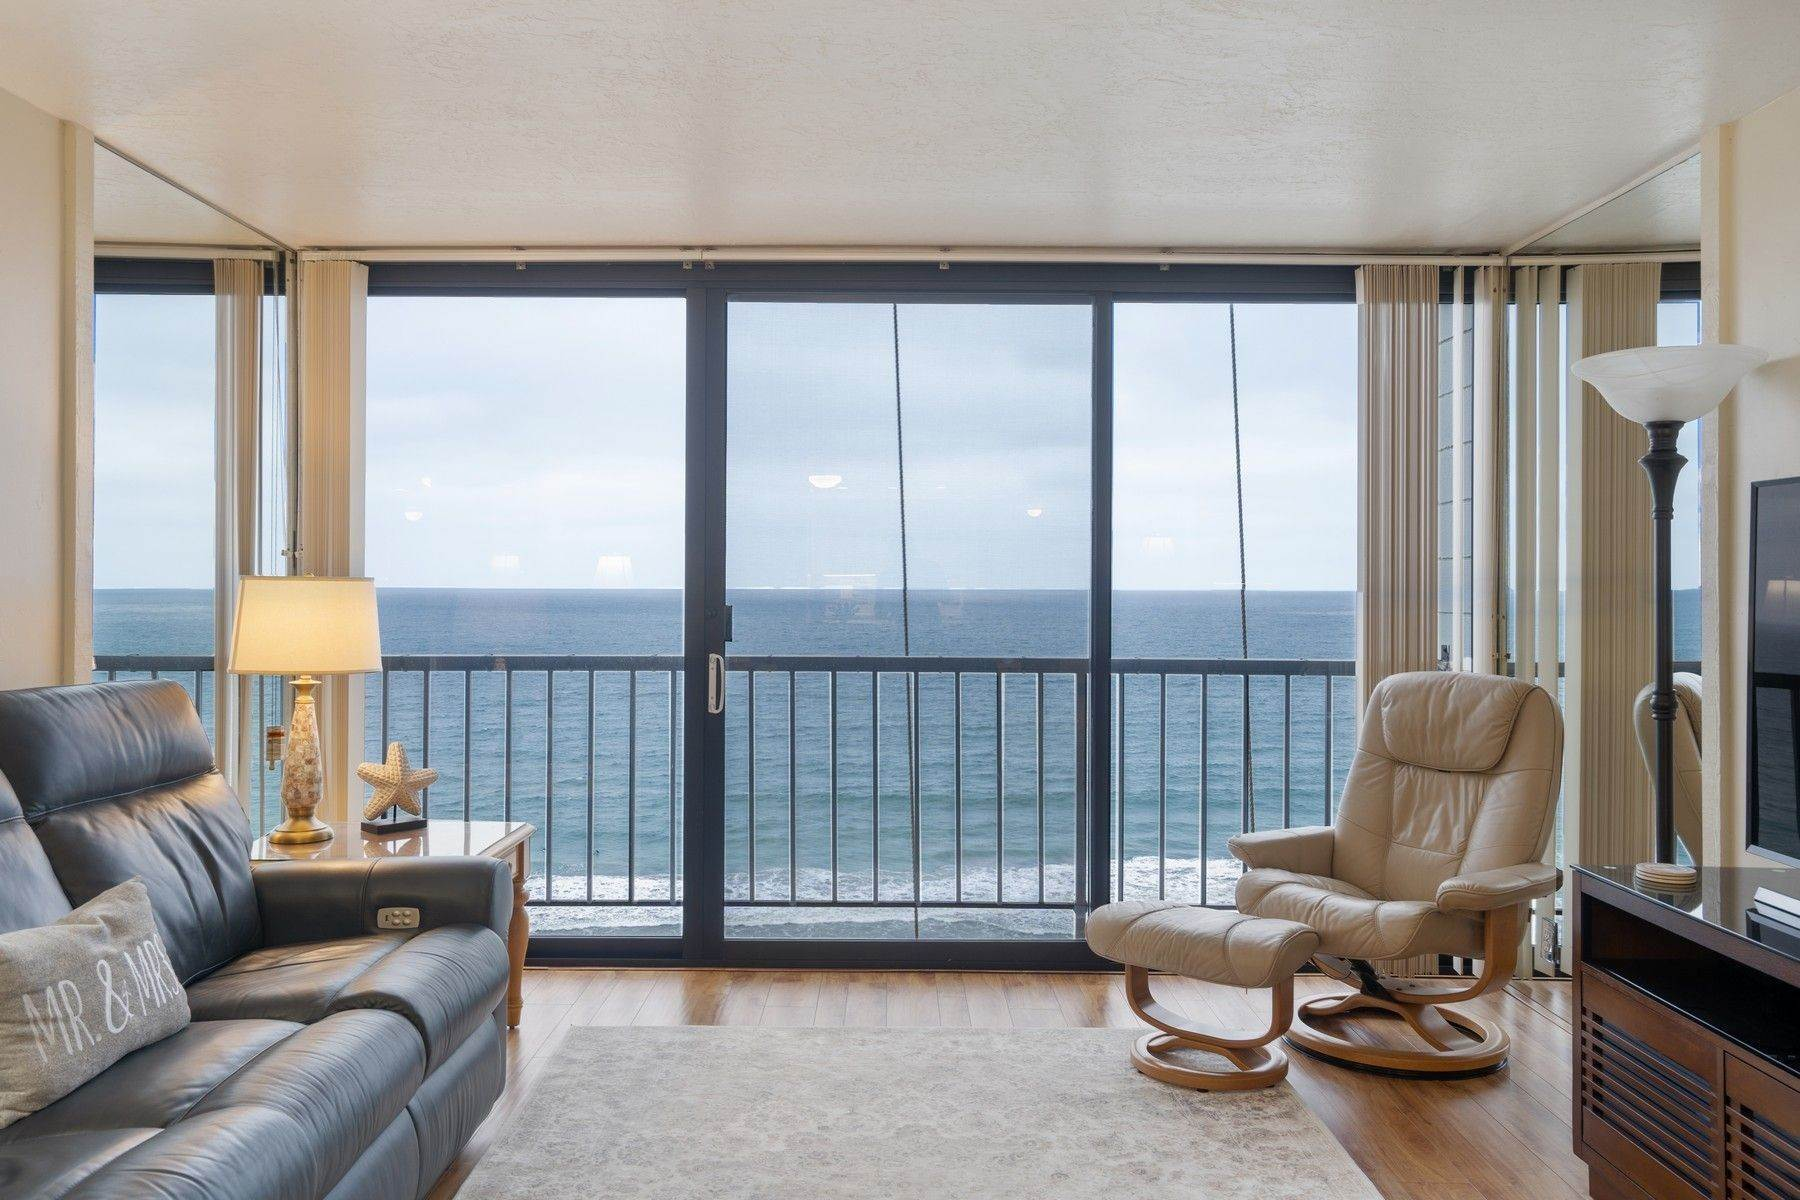 Condominiums for Sale at Capri By The Sea Ocean Views 4767 Ocean Boulevard, Unit 1007 San Diego, California 92109 United States